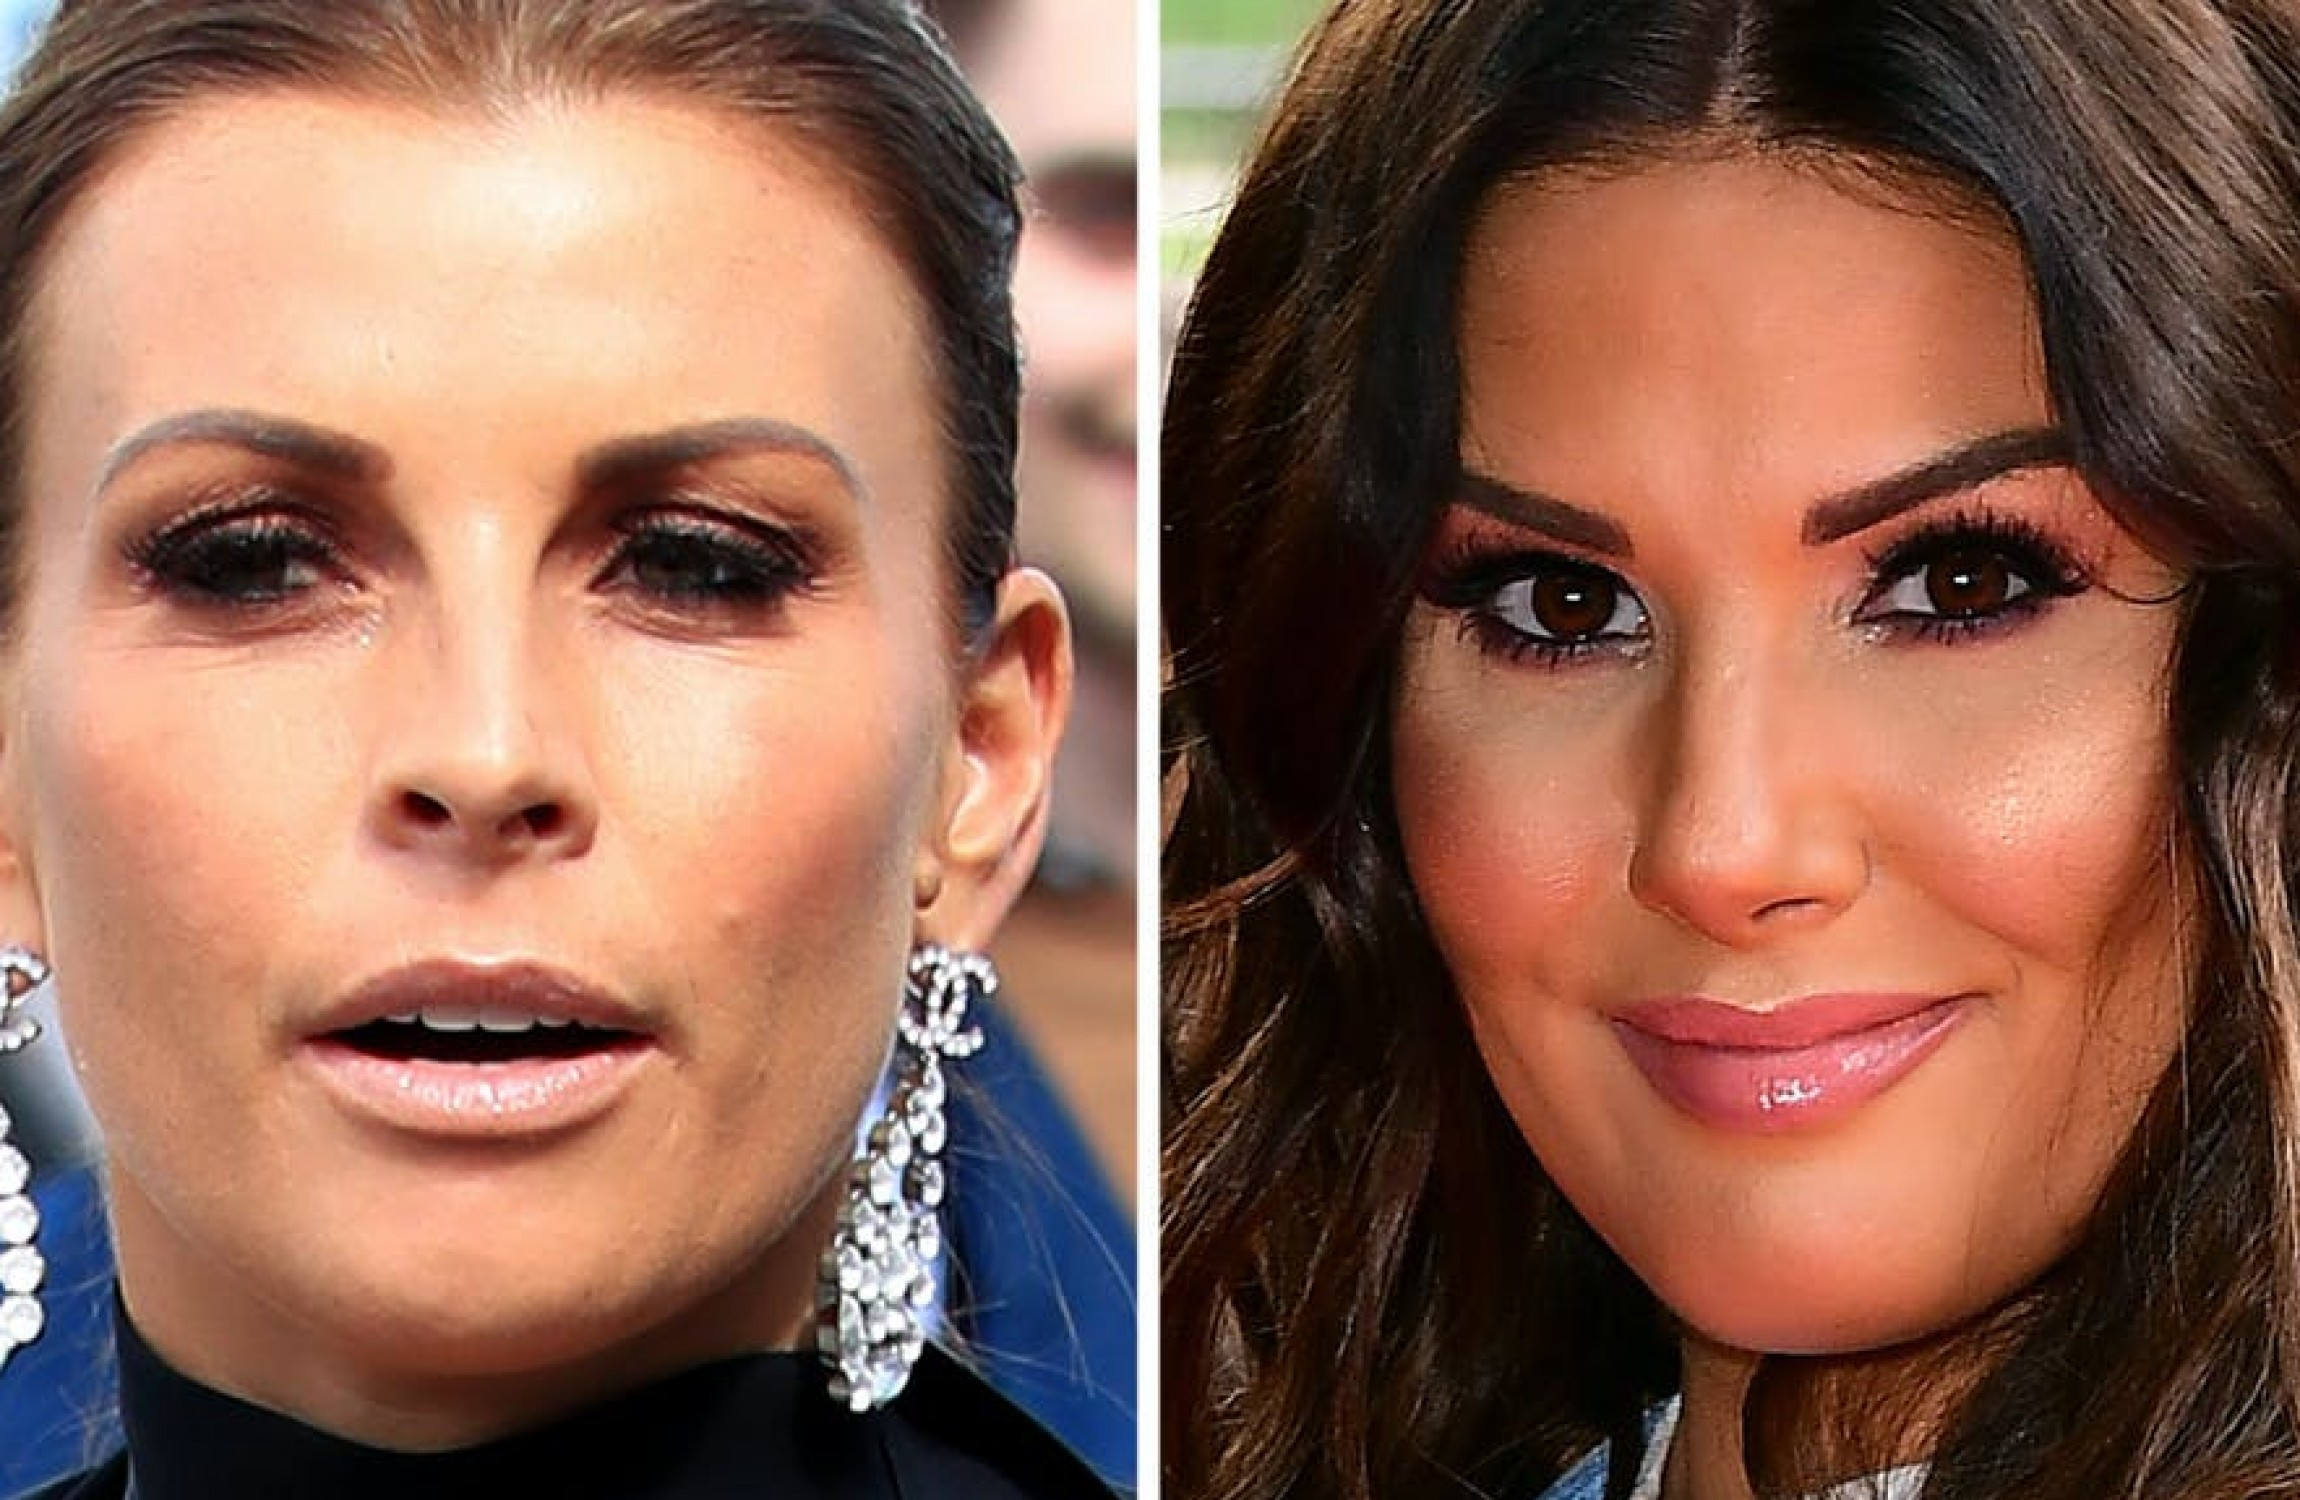 Rebekah Vardy backed by High Court in Coleen Rooney libel hearing